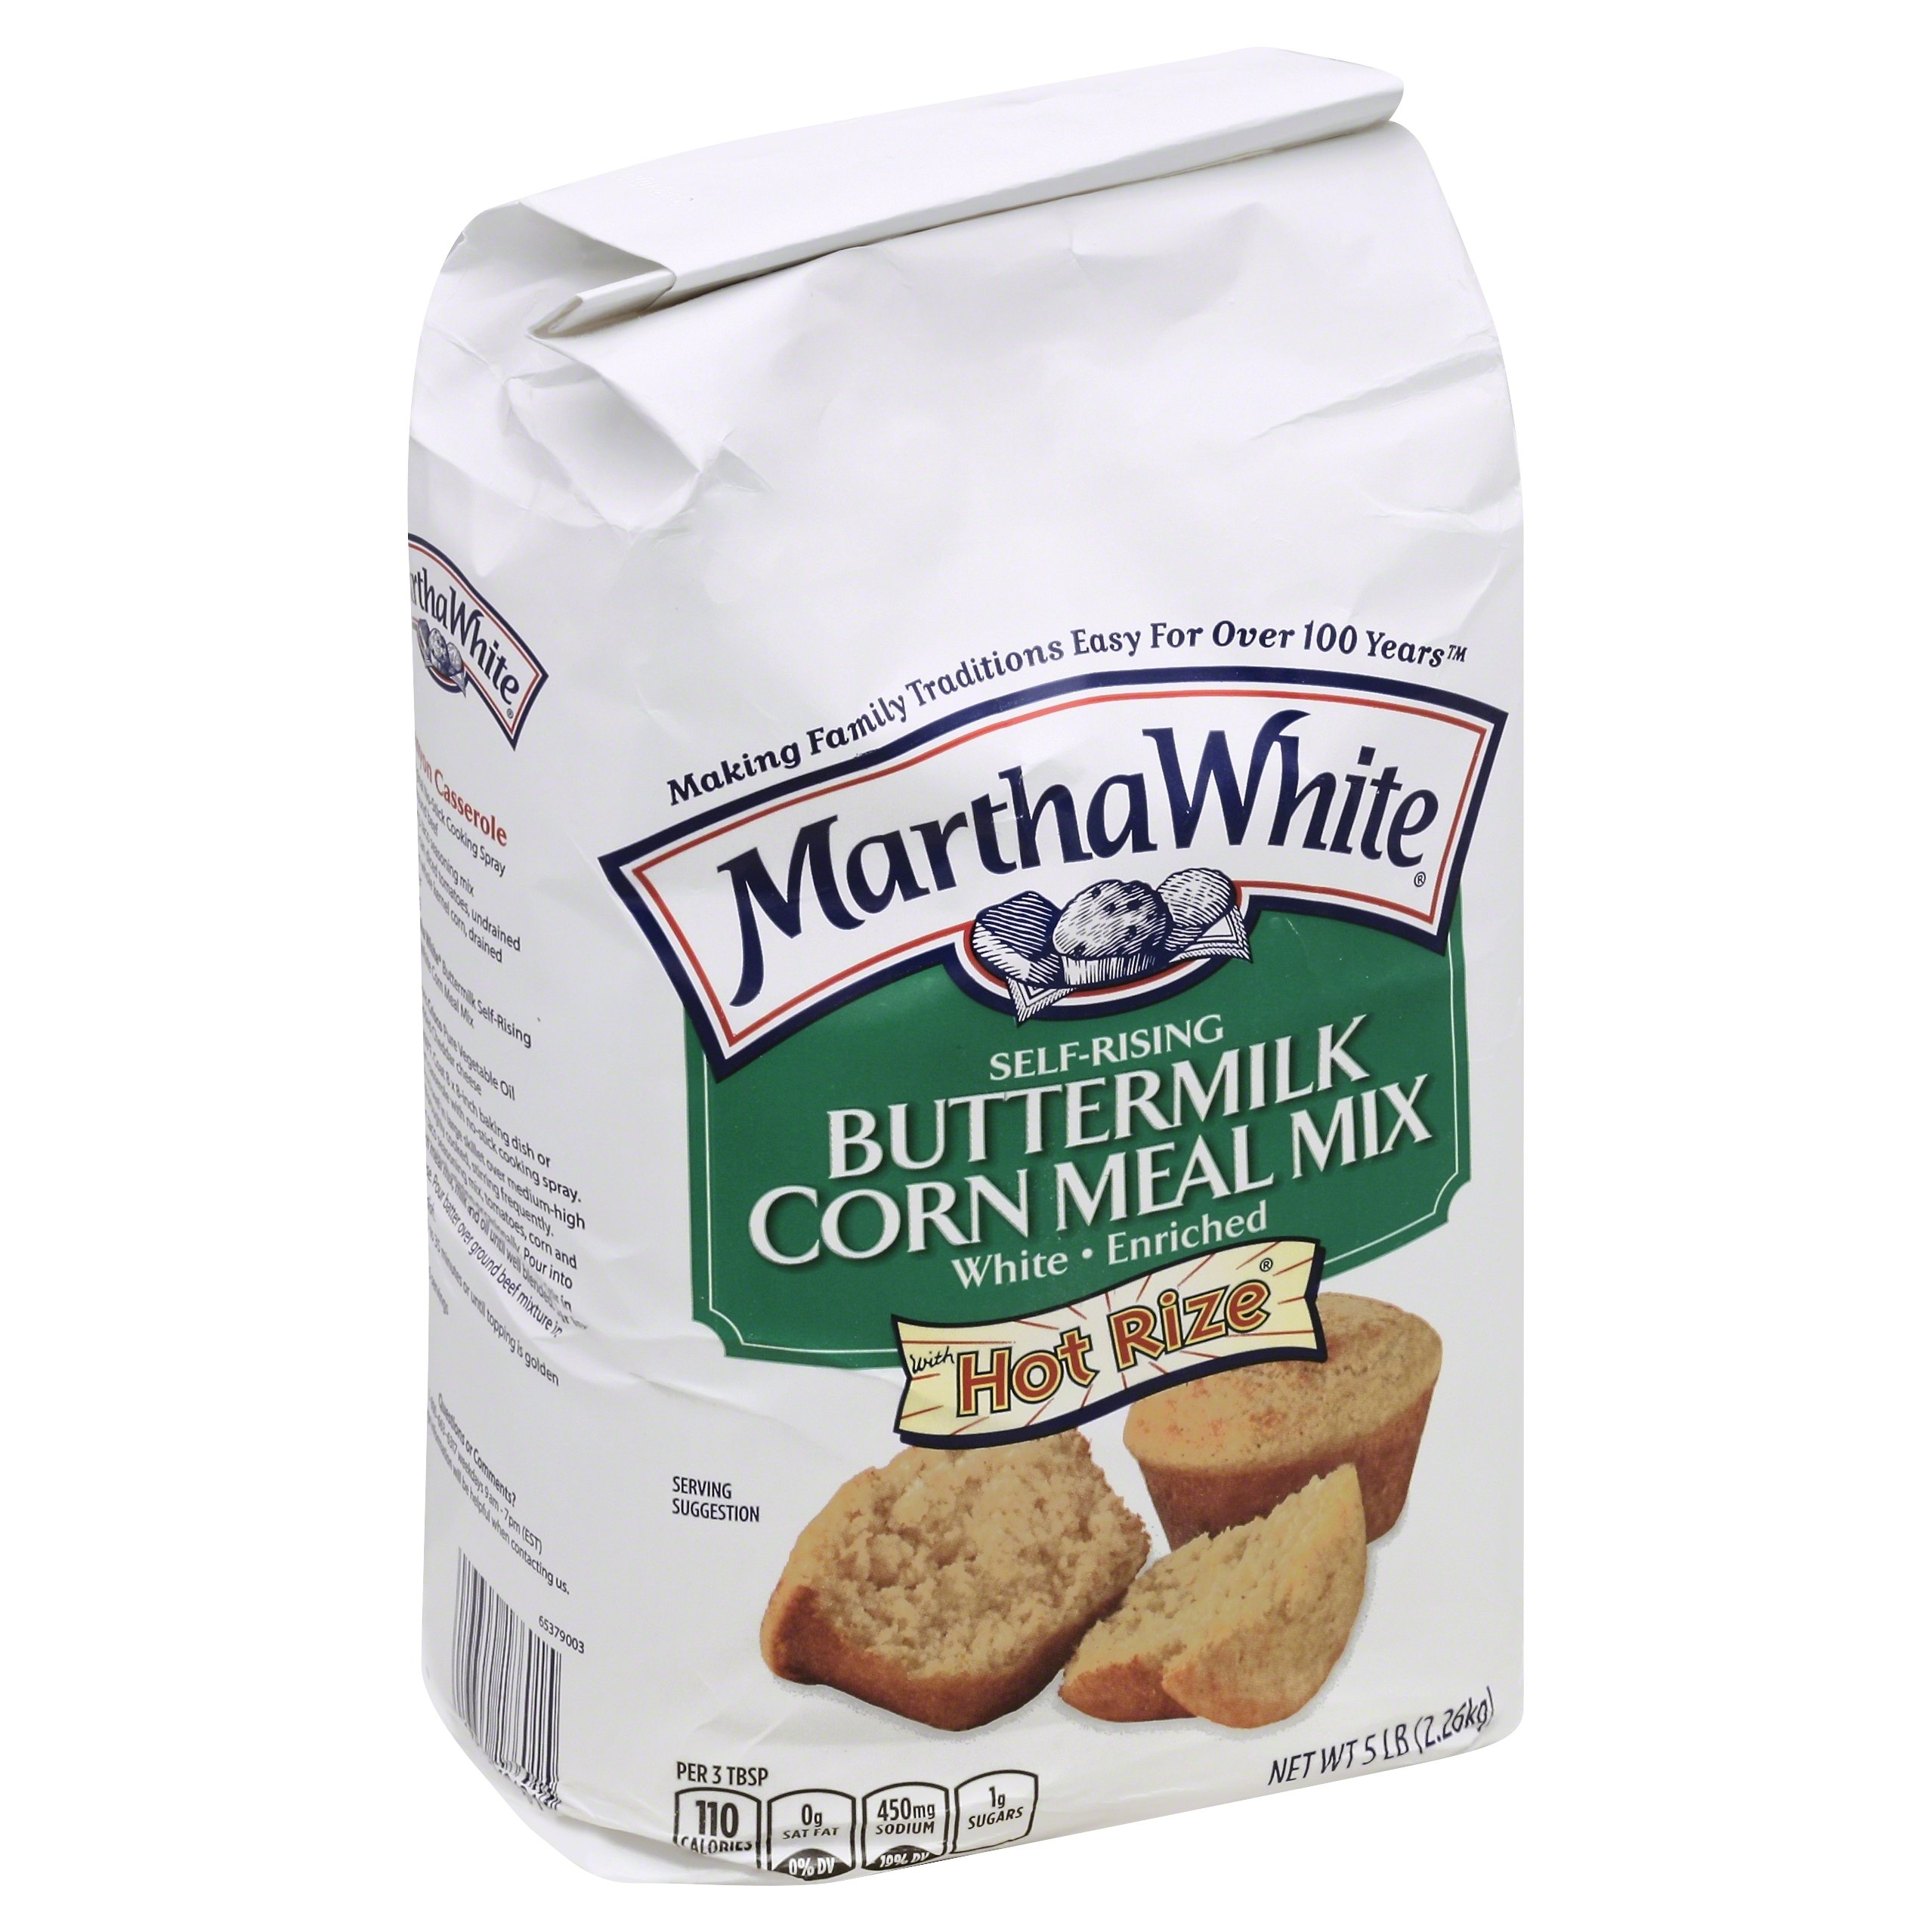 Martha White Buttermilk Self-Rising Enriched White Corn Meal Mix, 5 lb